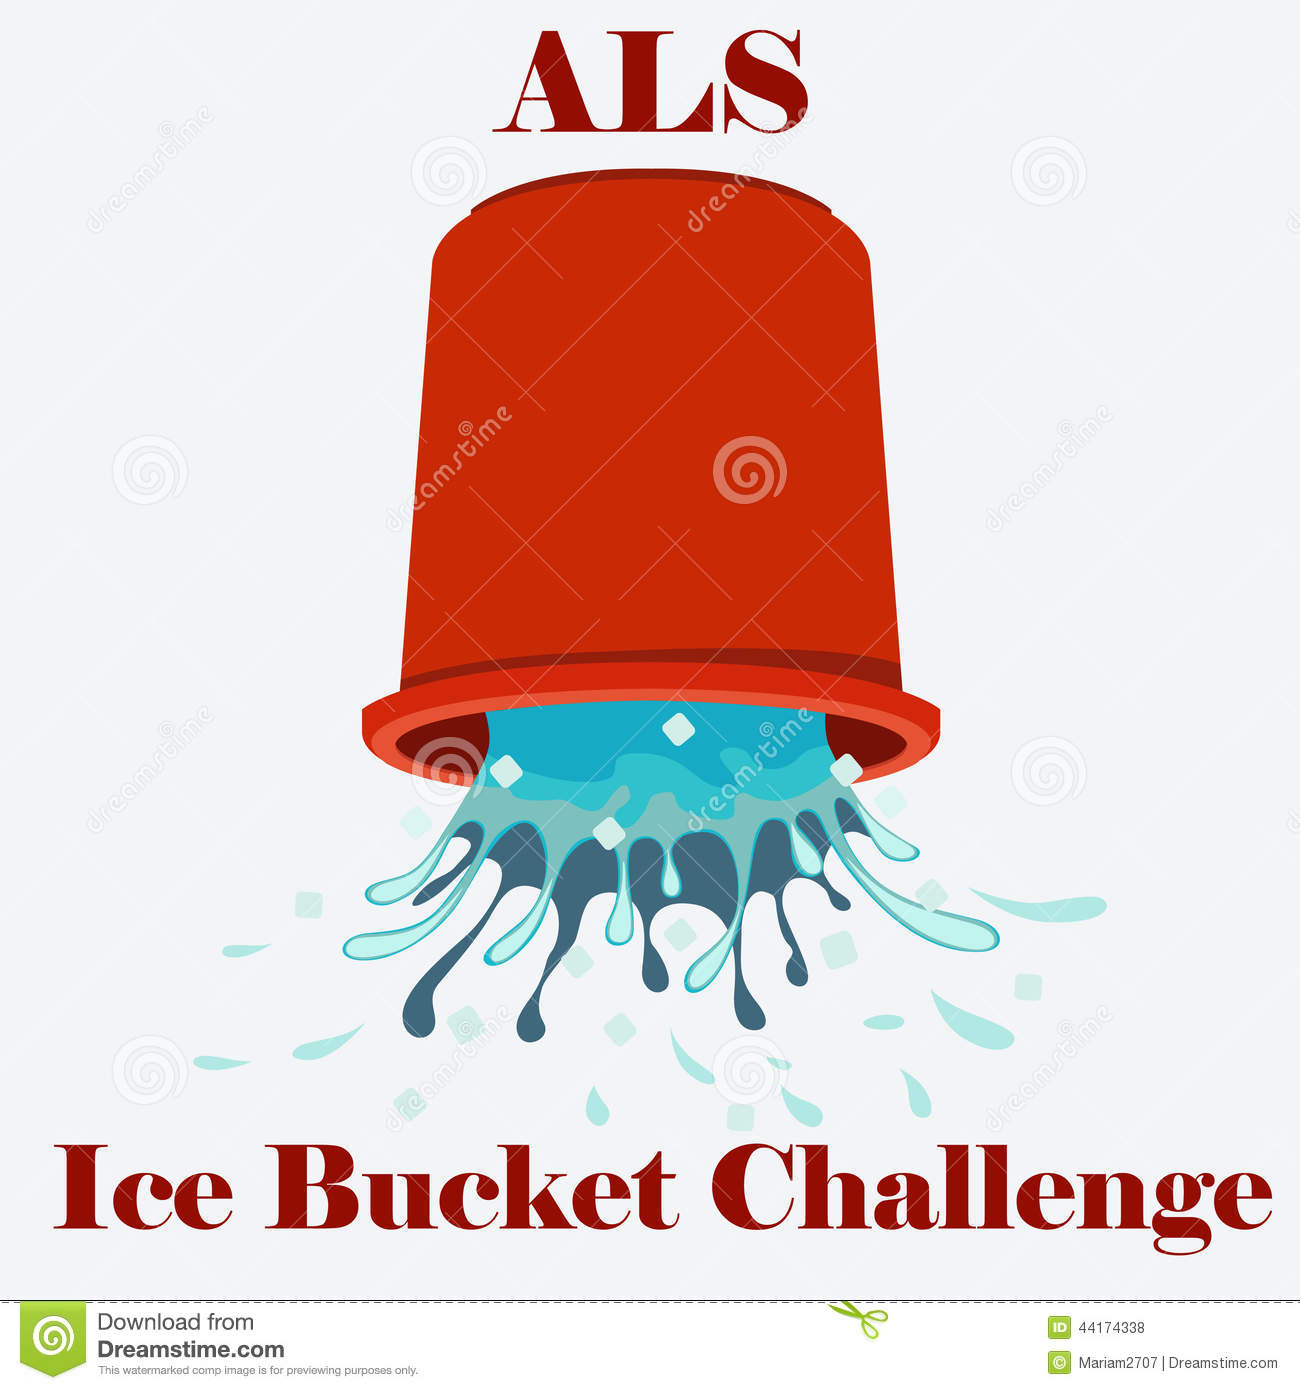 commentary on als ice bucket challenge Boston mayor marty walsh became the latest public official to take the als ice bucket challenge, alongside members of his administration in city hall plaza.